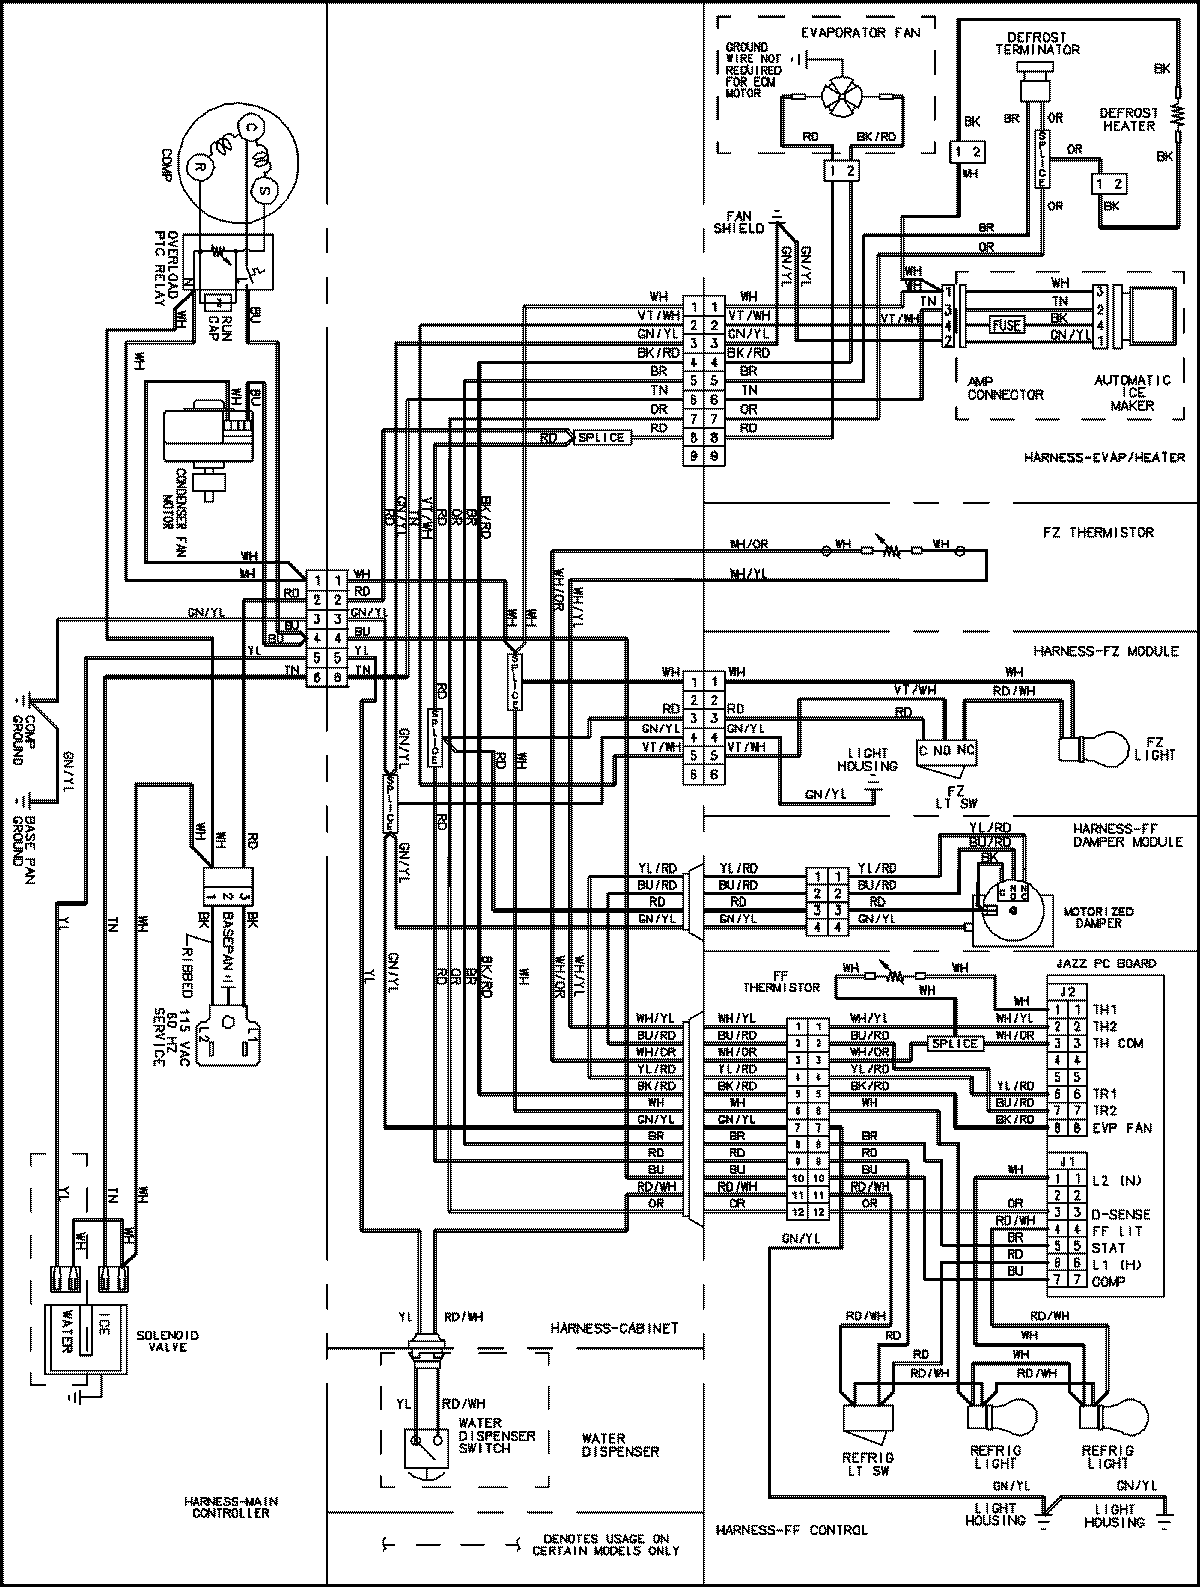 ABB1927DES%2BWiring%2BDiagram sea breeze appliance parts service and technical manuals amana goodman defrost control board wiring diagram at bakdesigns.co